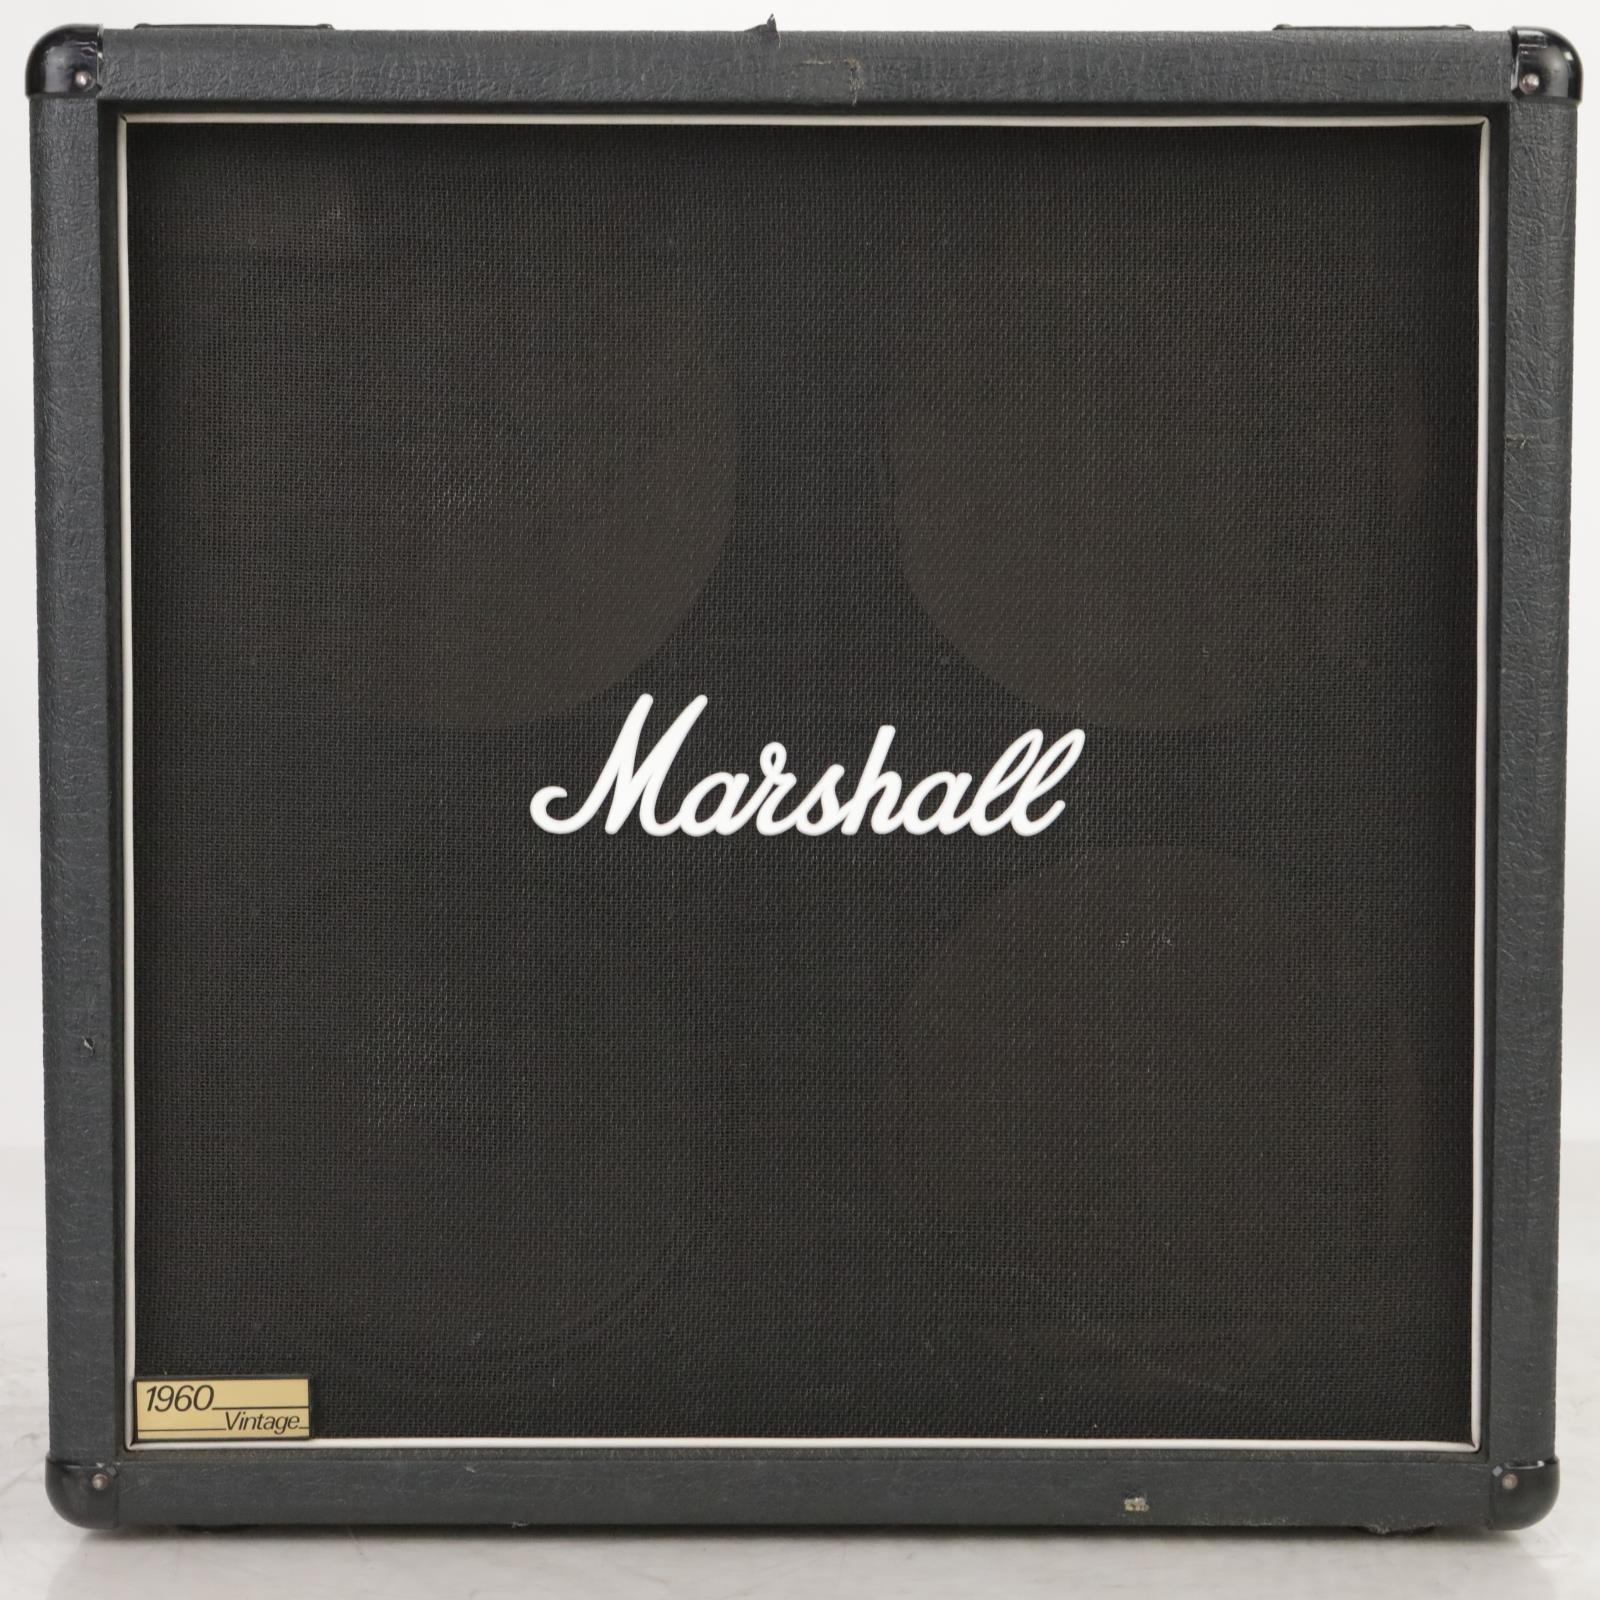 Marshall 1960 Vintage G12 4x12 Speaker Cabinet owned by Steve Stevens #37785